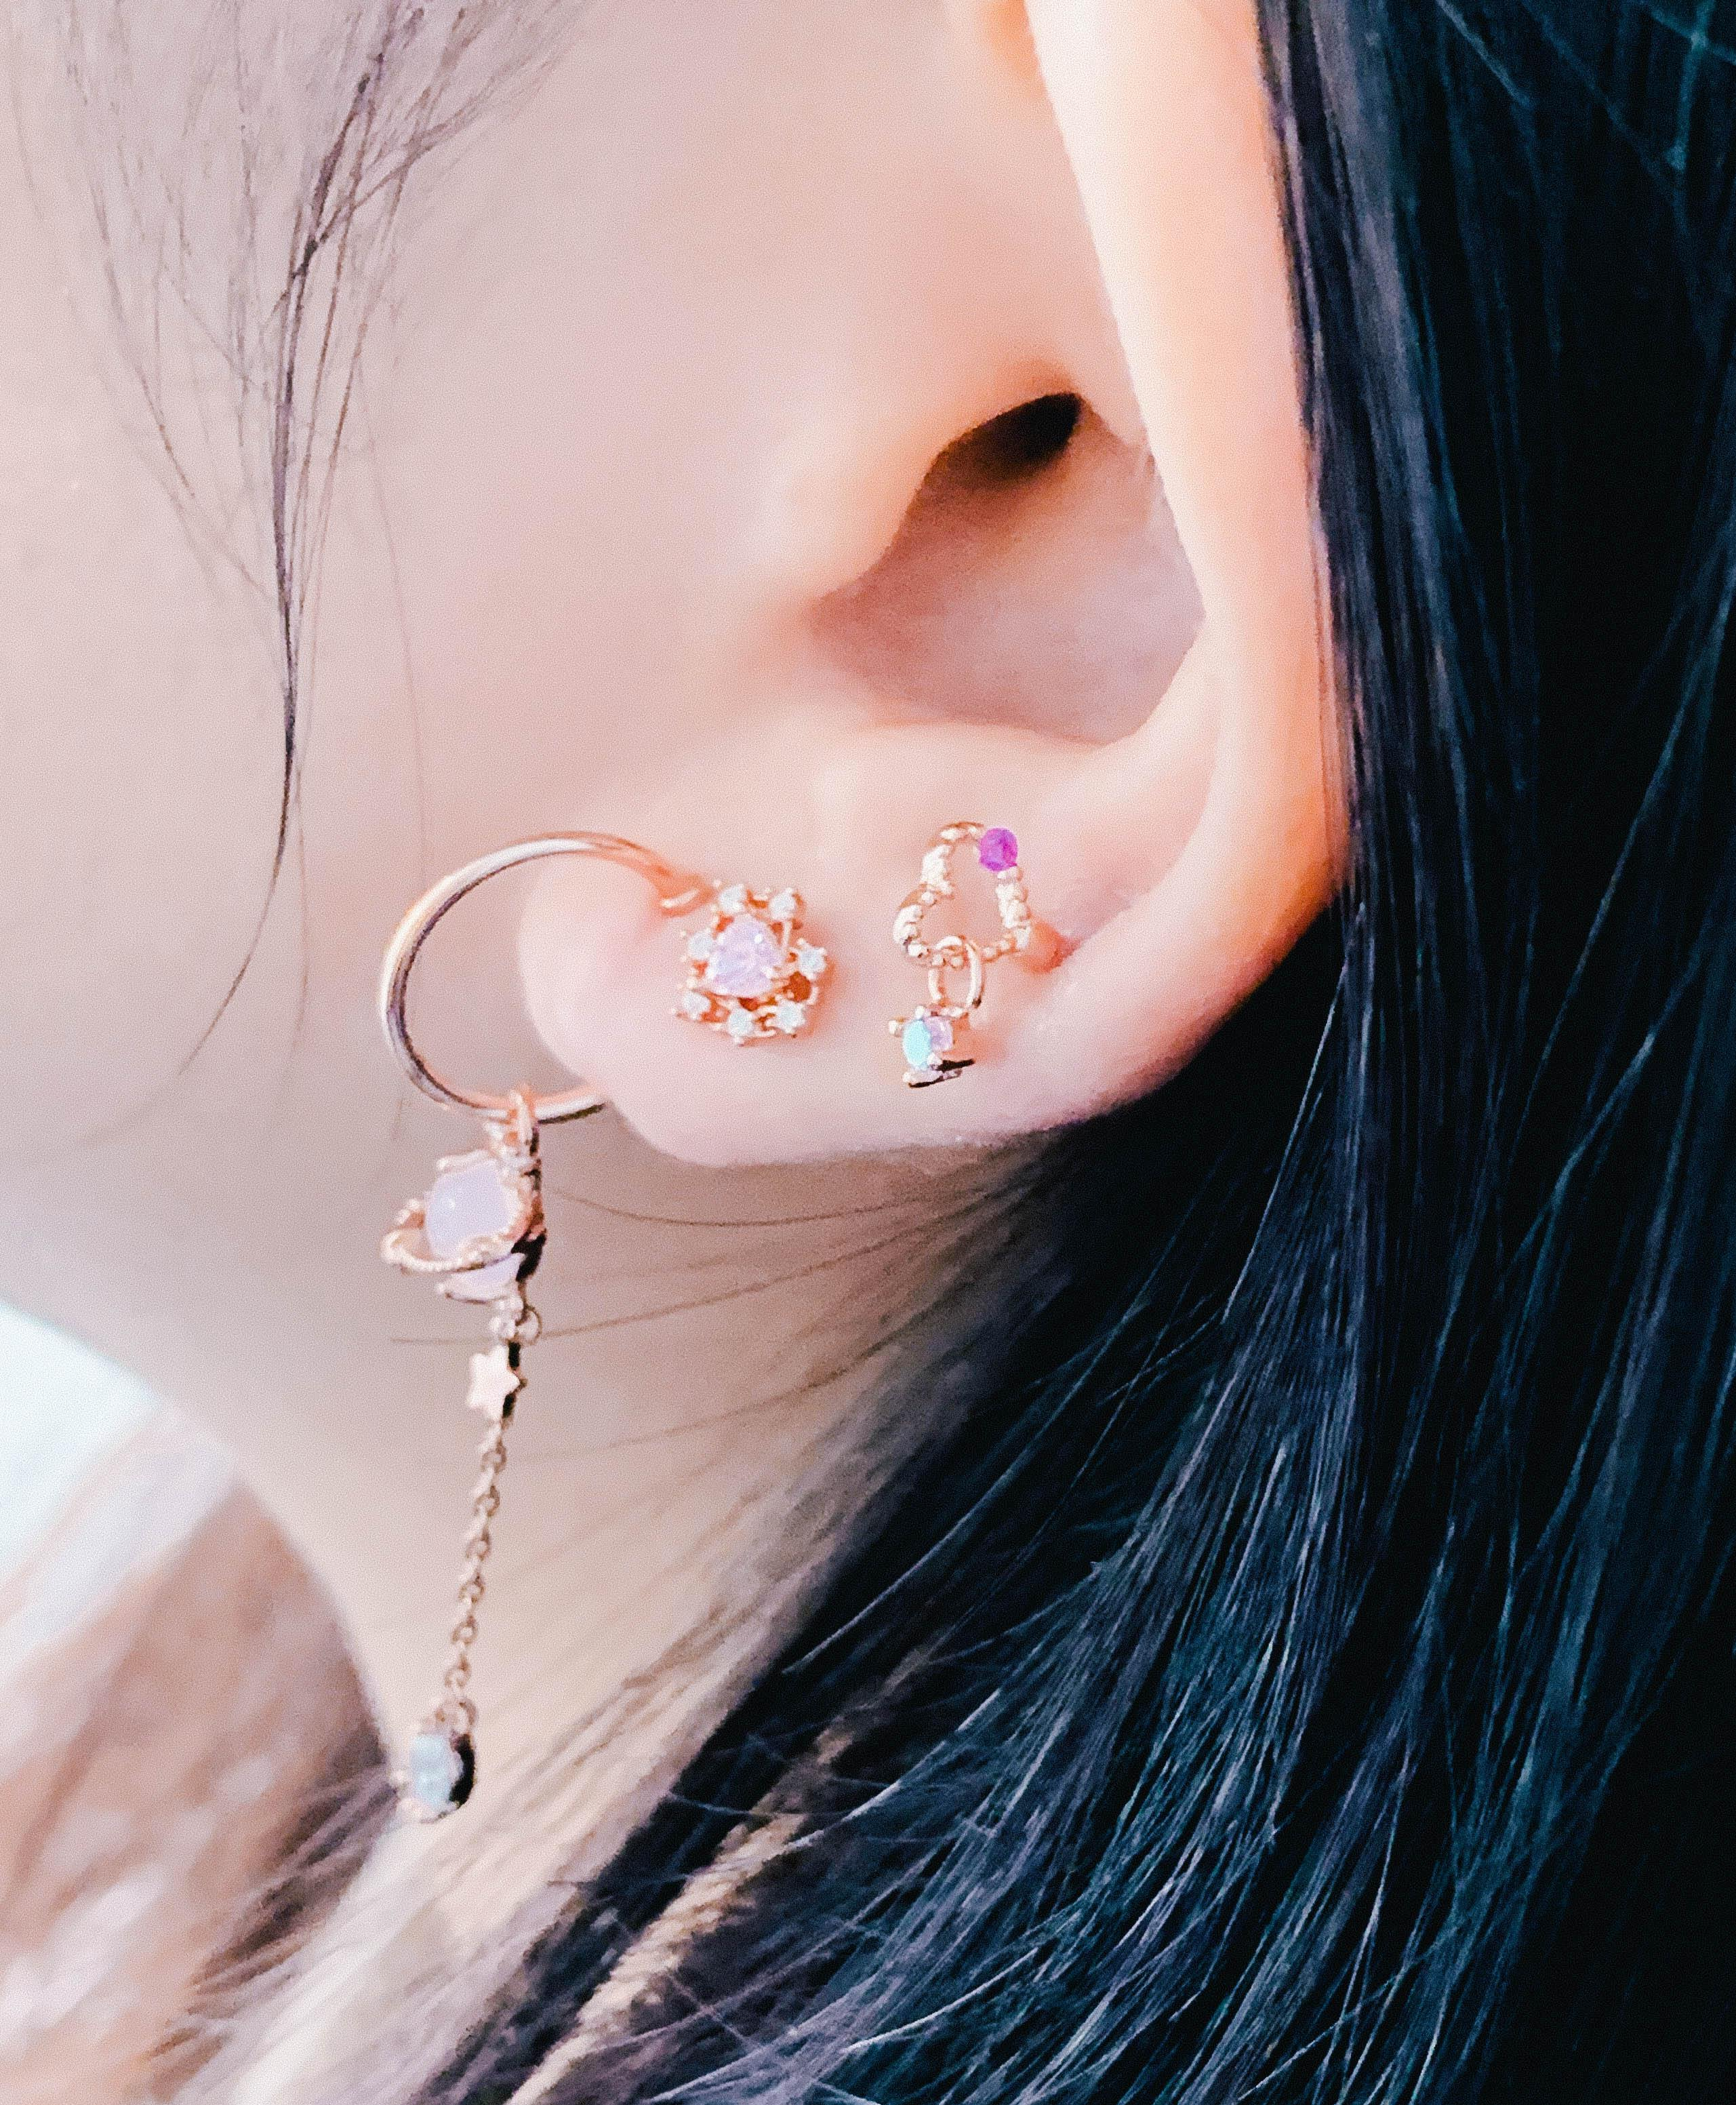 Follow Me SET (ピアス/ピアッシング) Piercing anything else